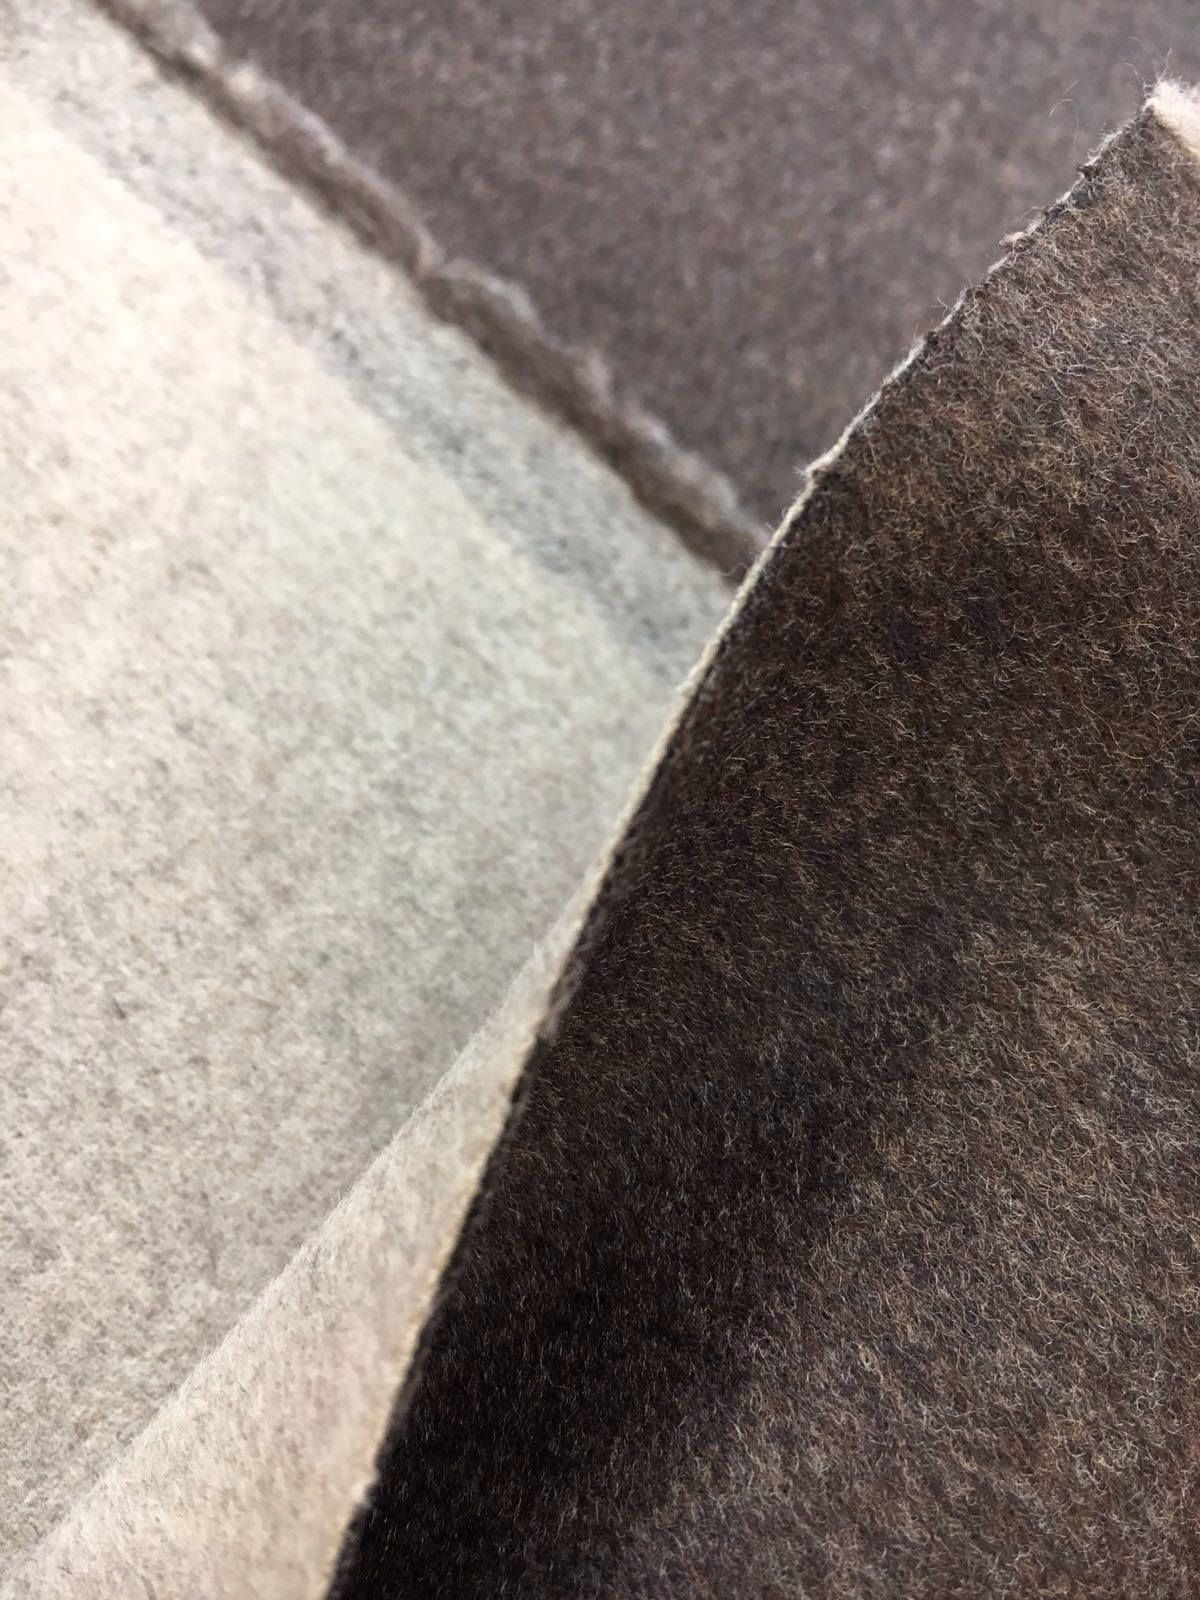 Cashmere Fabric Pure Wool Coat Wool Fabric Cashmere Material For Coat Double Face Remnant 1 4 Yard Cashmere Fabric Remnants Cashmere Fabric Other Fabrics